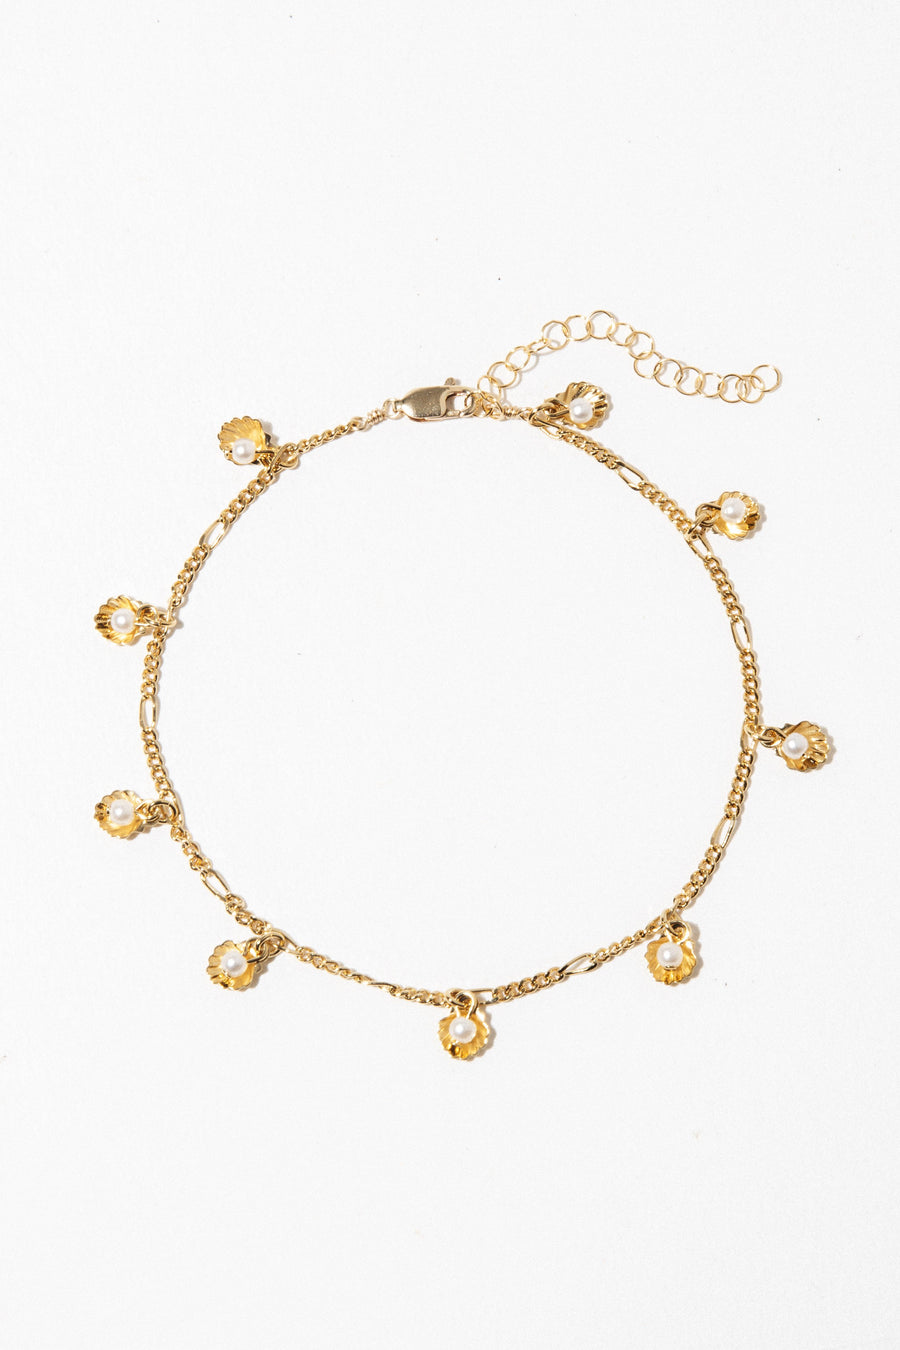 Goddess Jewelry Gold Pinnidea Anklet